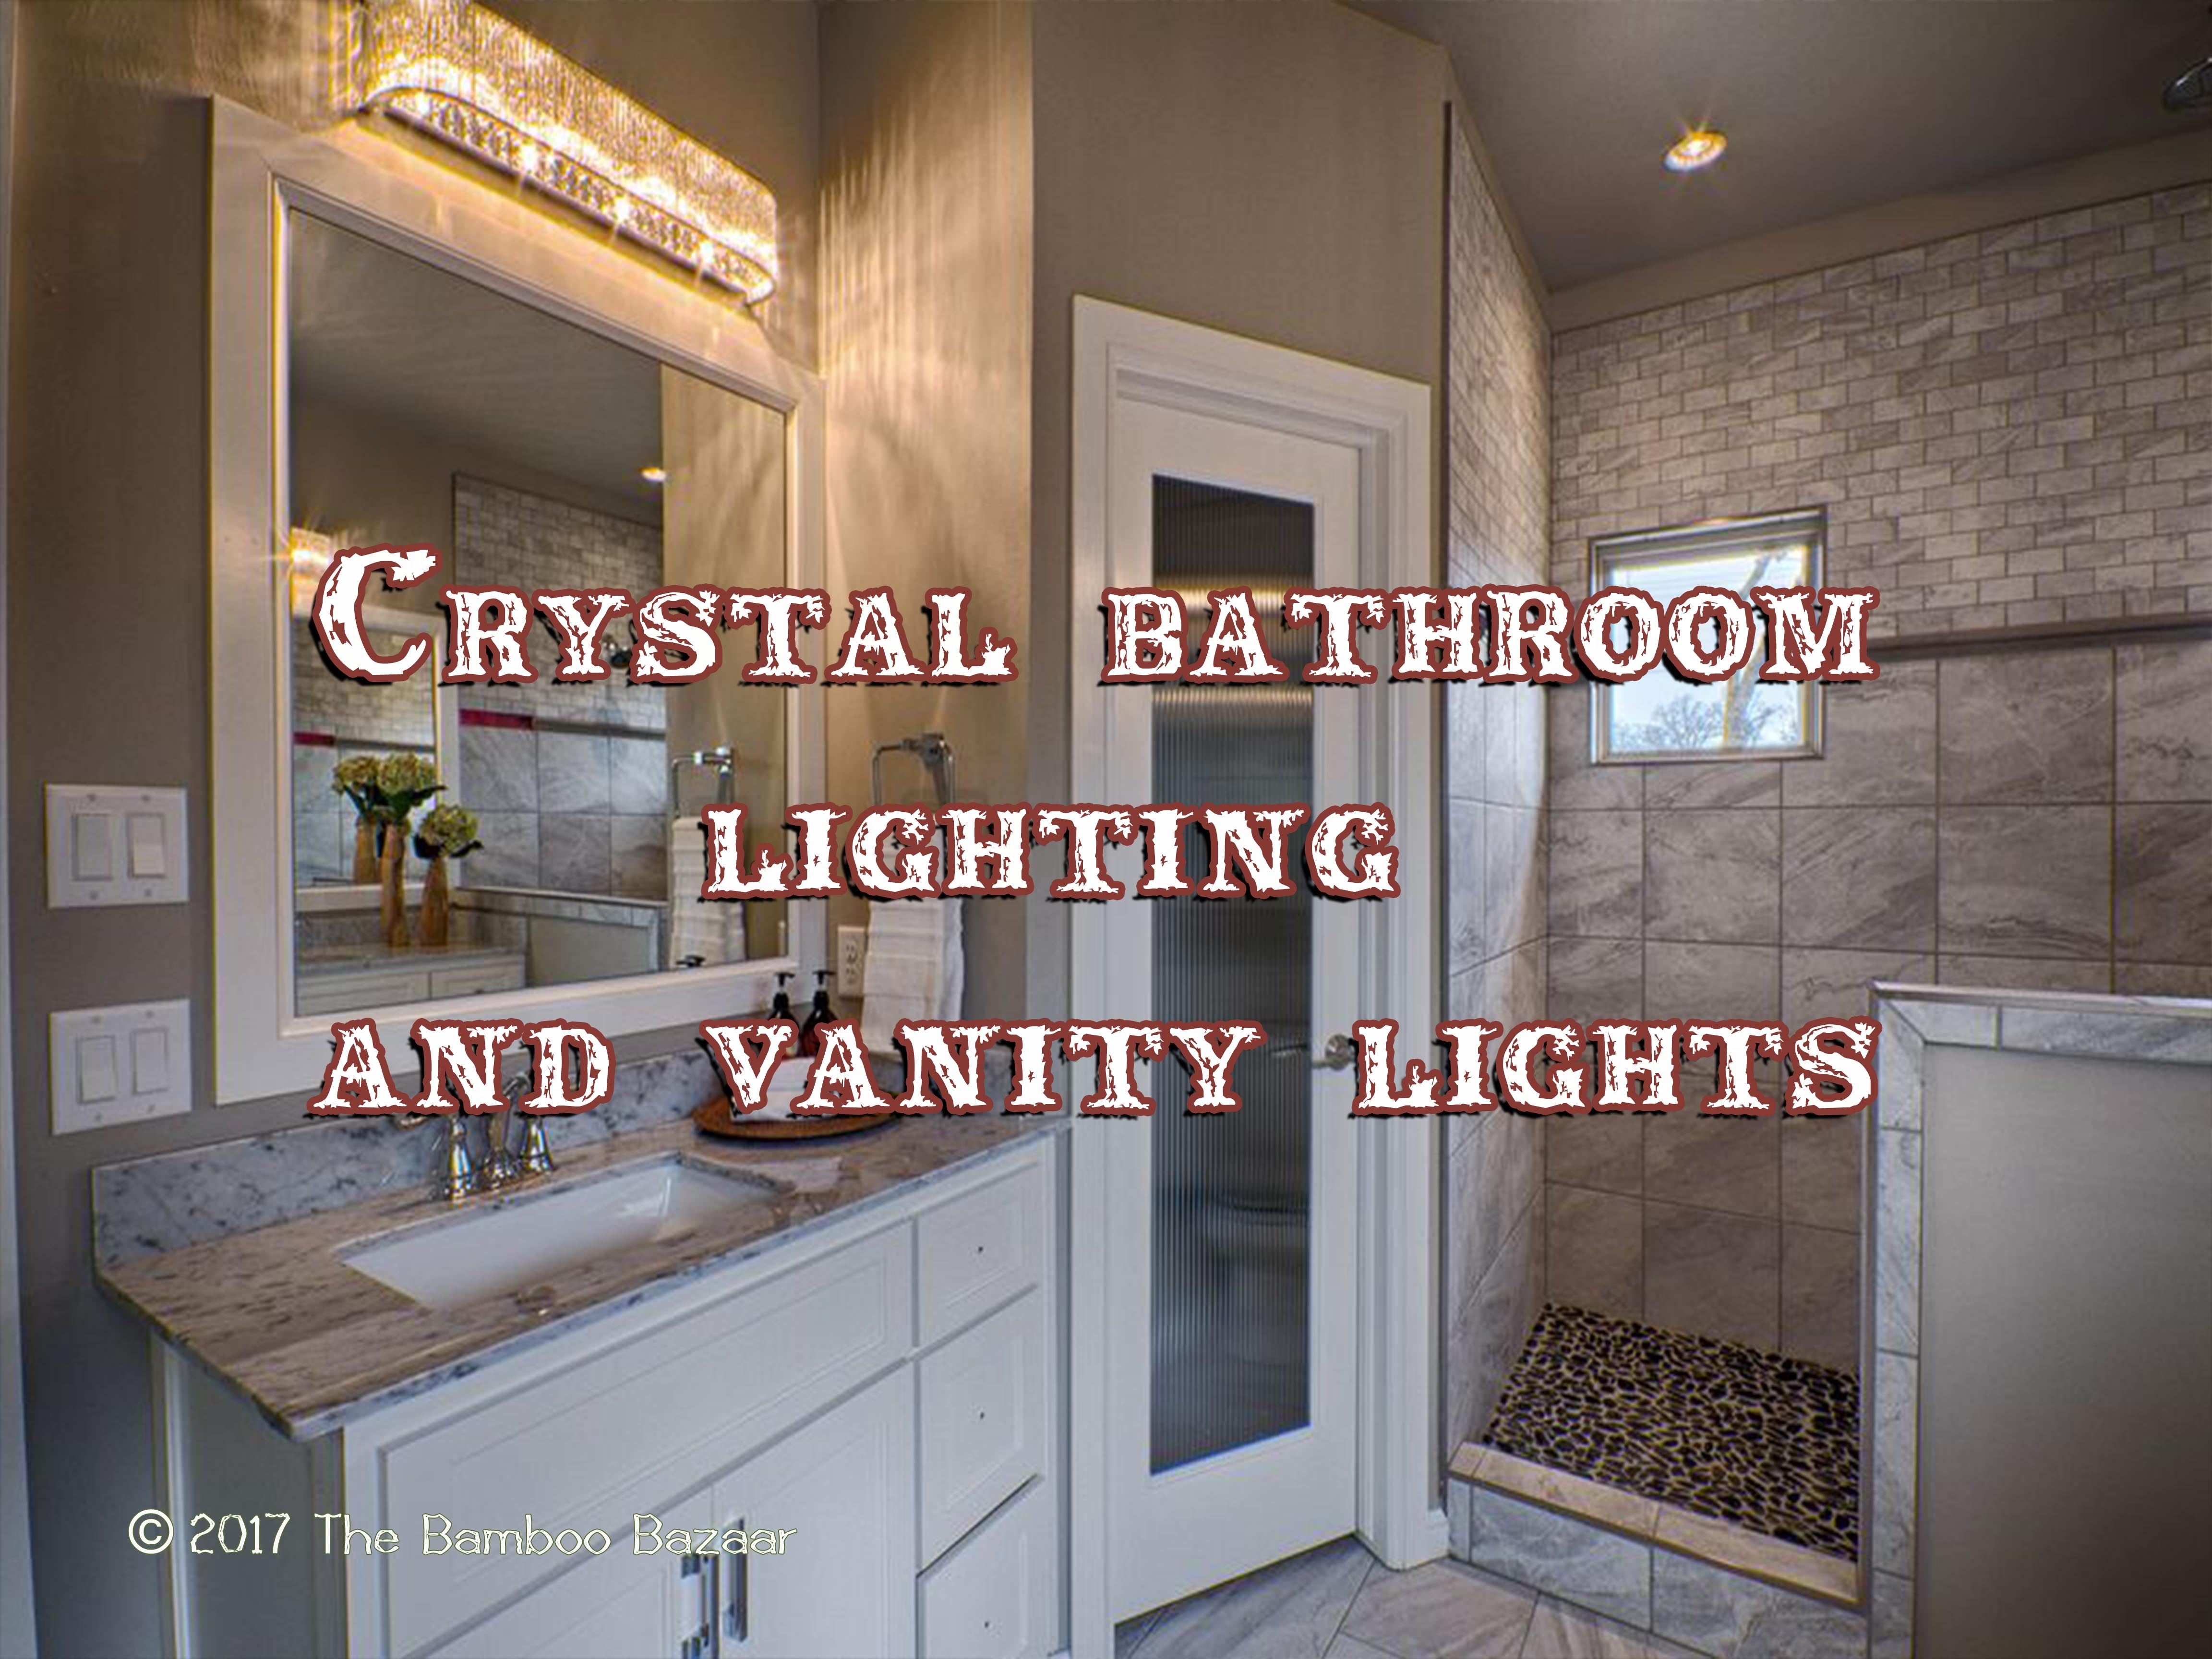 Vanity Lights For Bathroom Crystal bathroom lighting